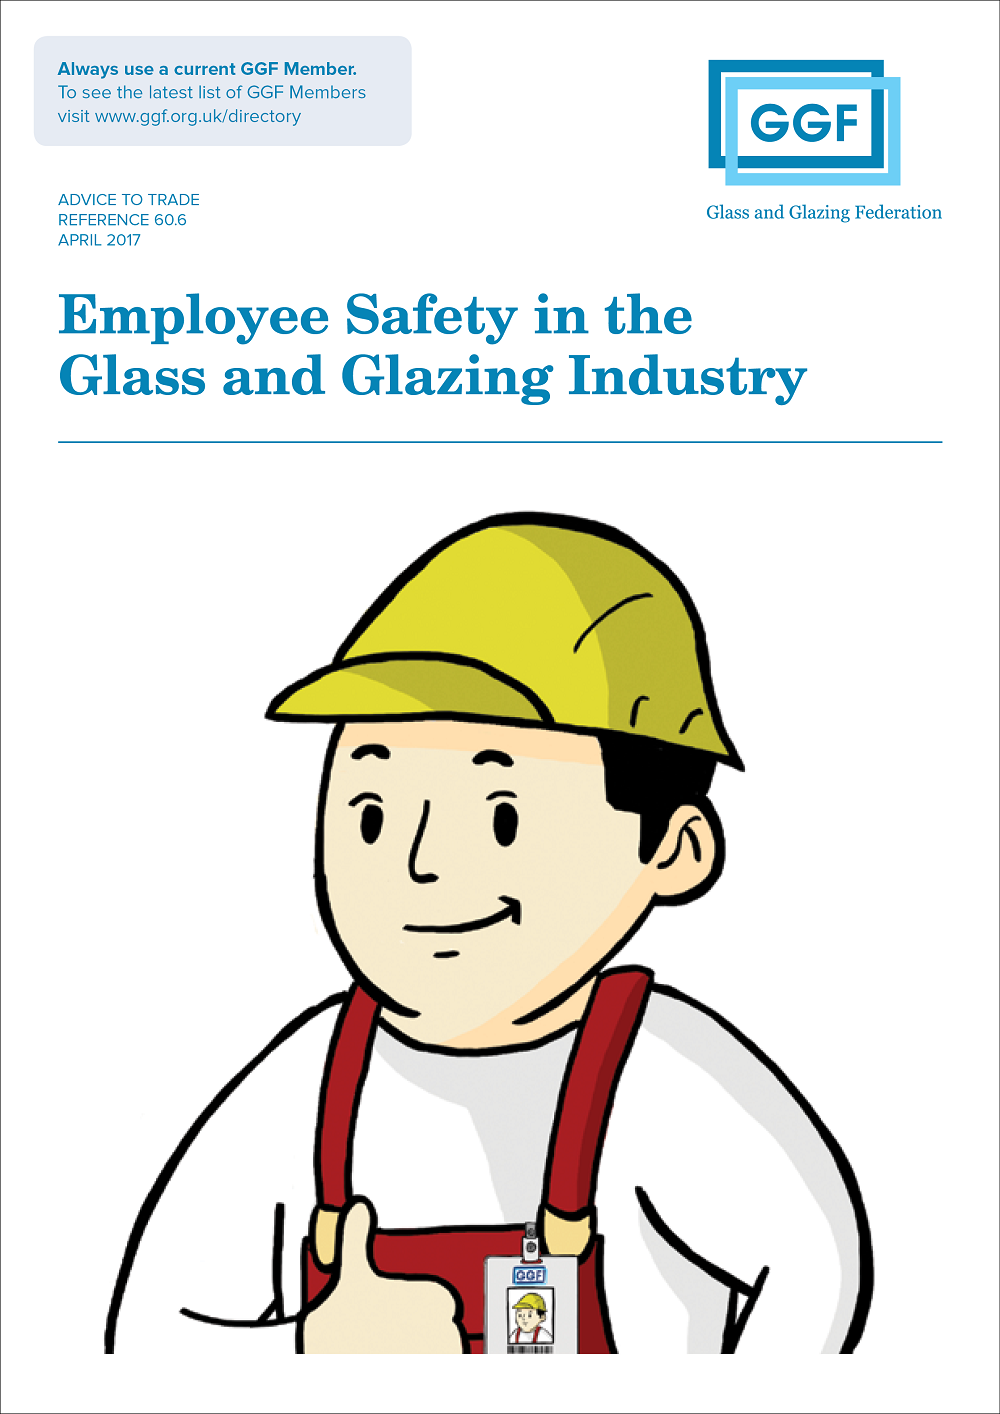 GGF employee safety in the glass and glazing industry